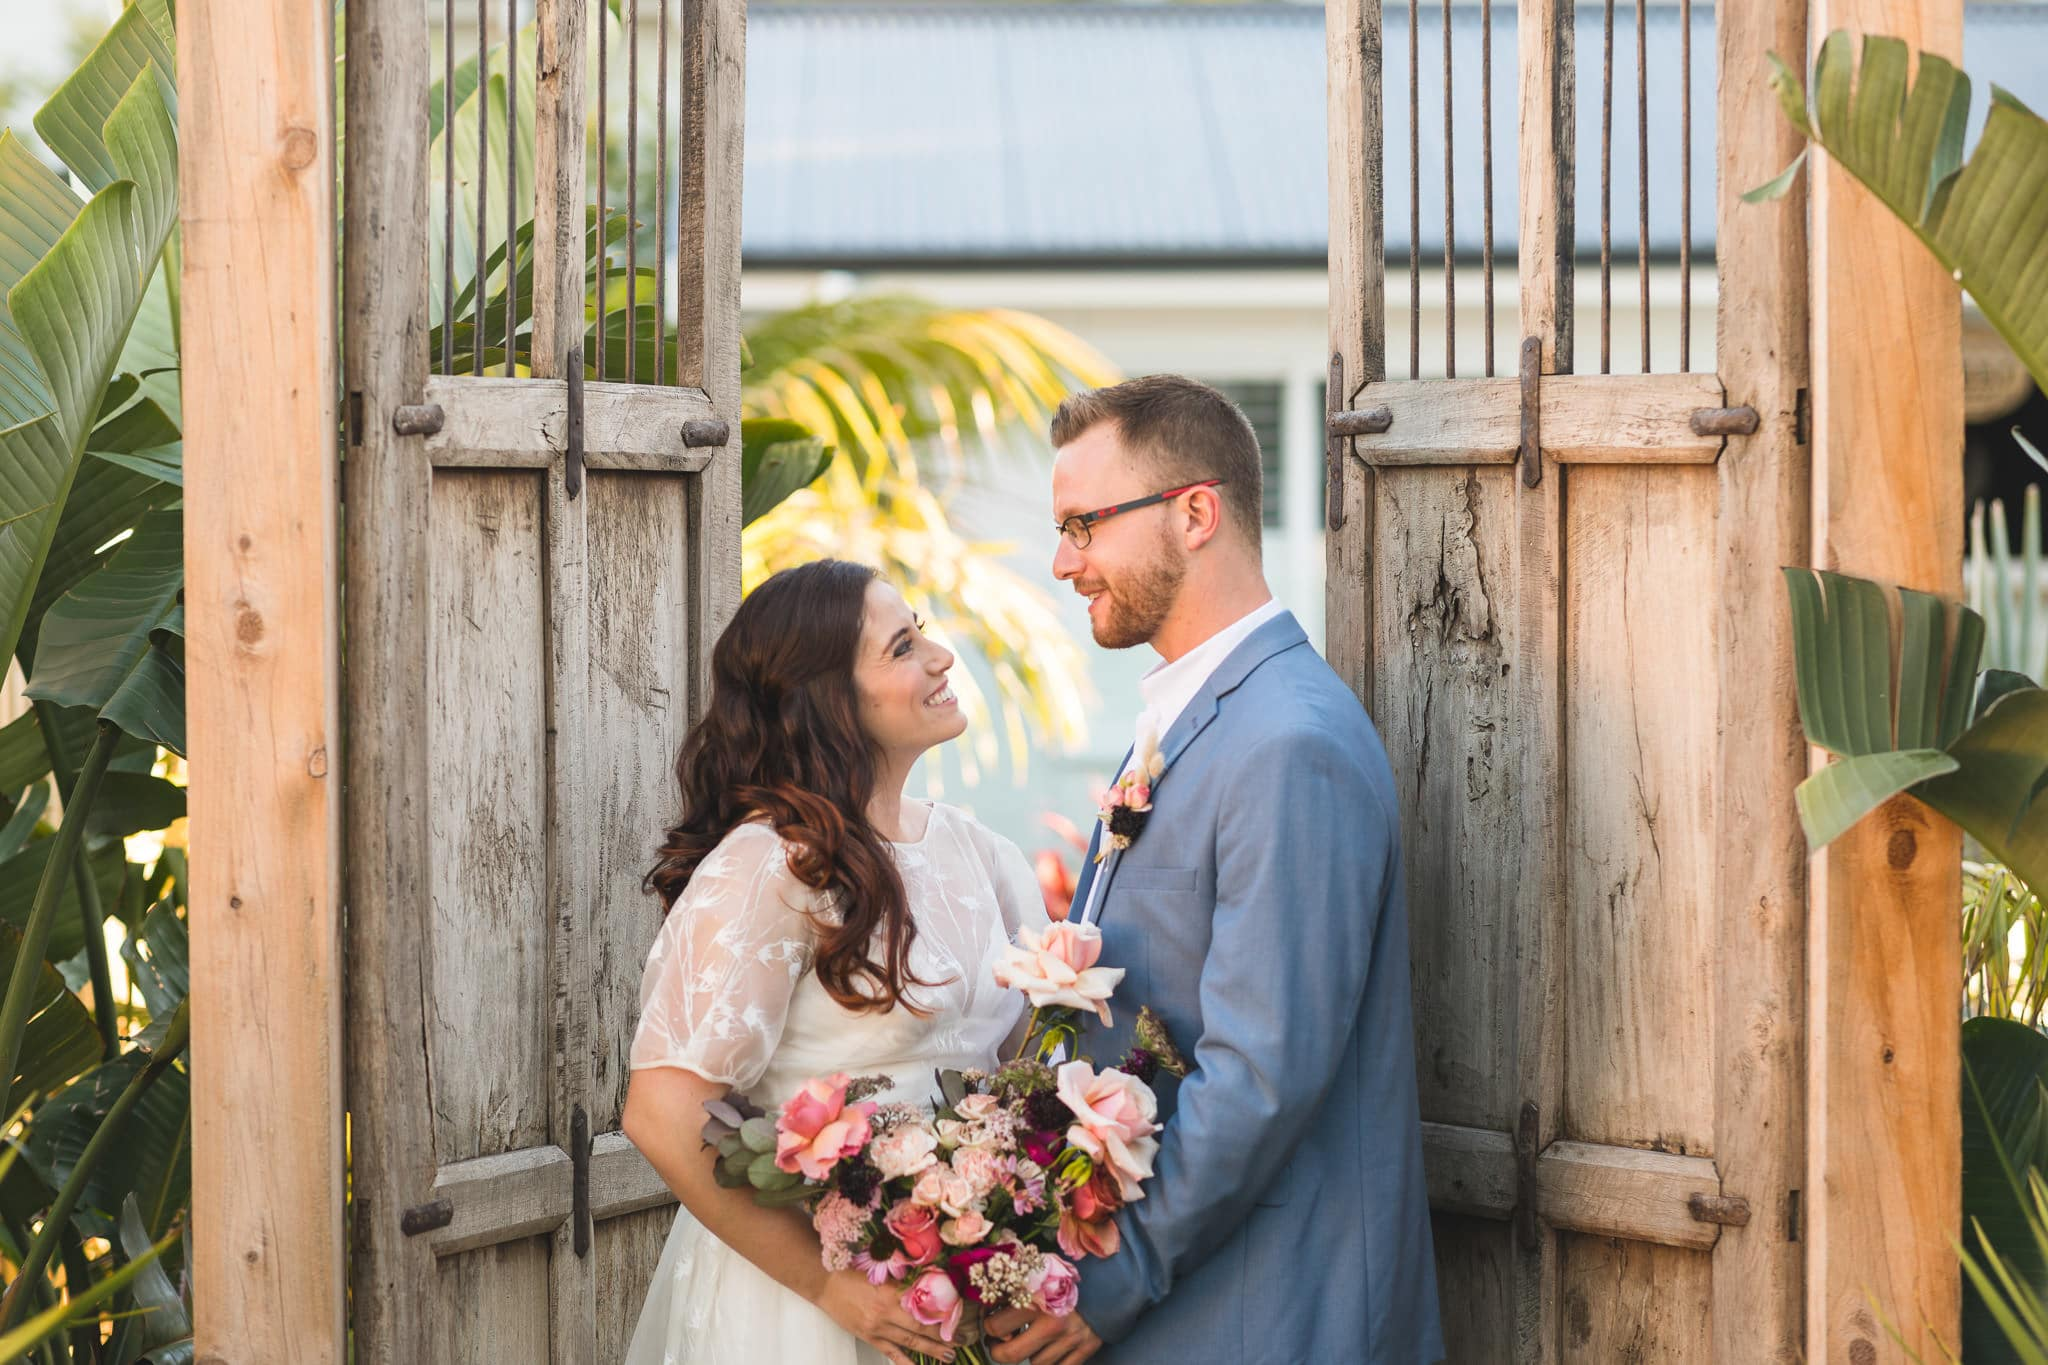 What to expect from your wedding photography